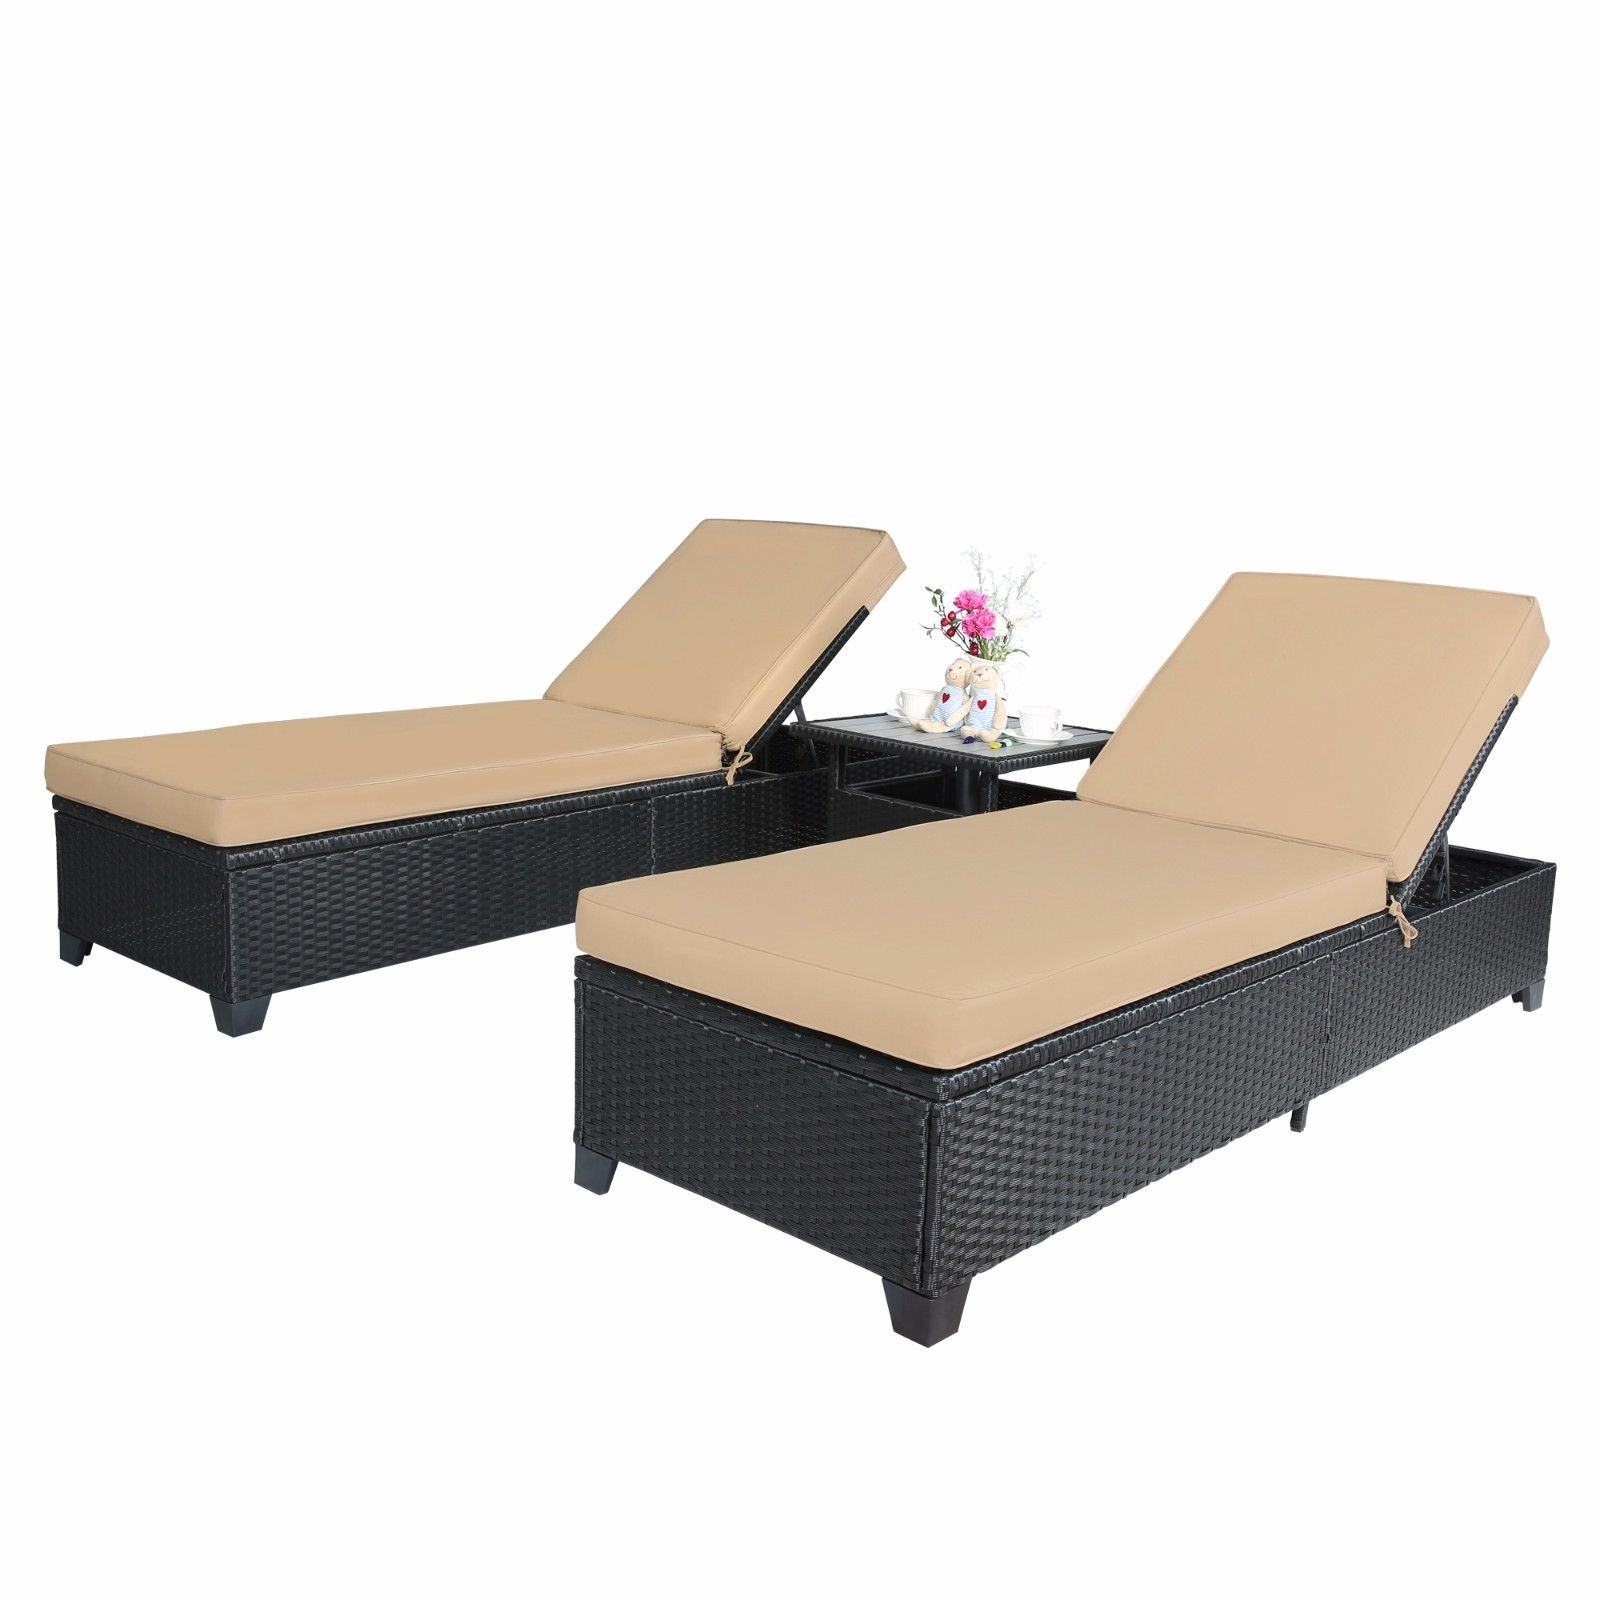 Outdoor 4pc Patio Wicker Rattan Chaise Lounge Chairs With